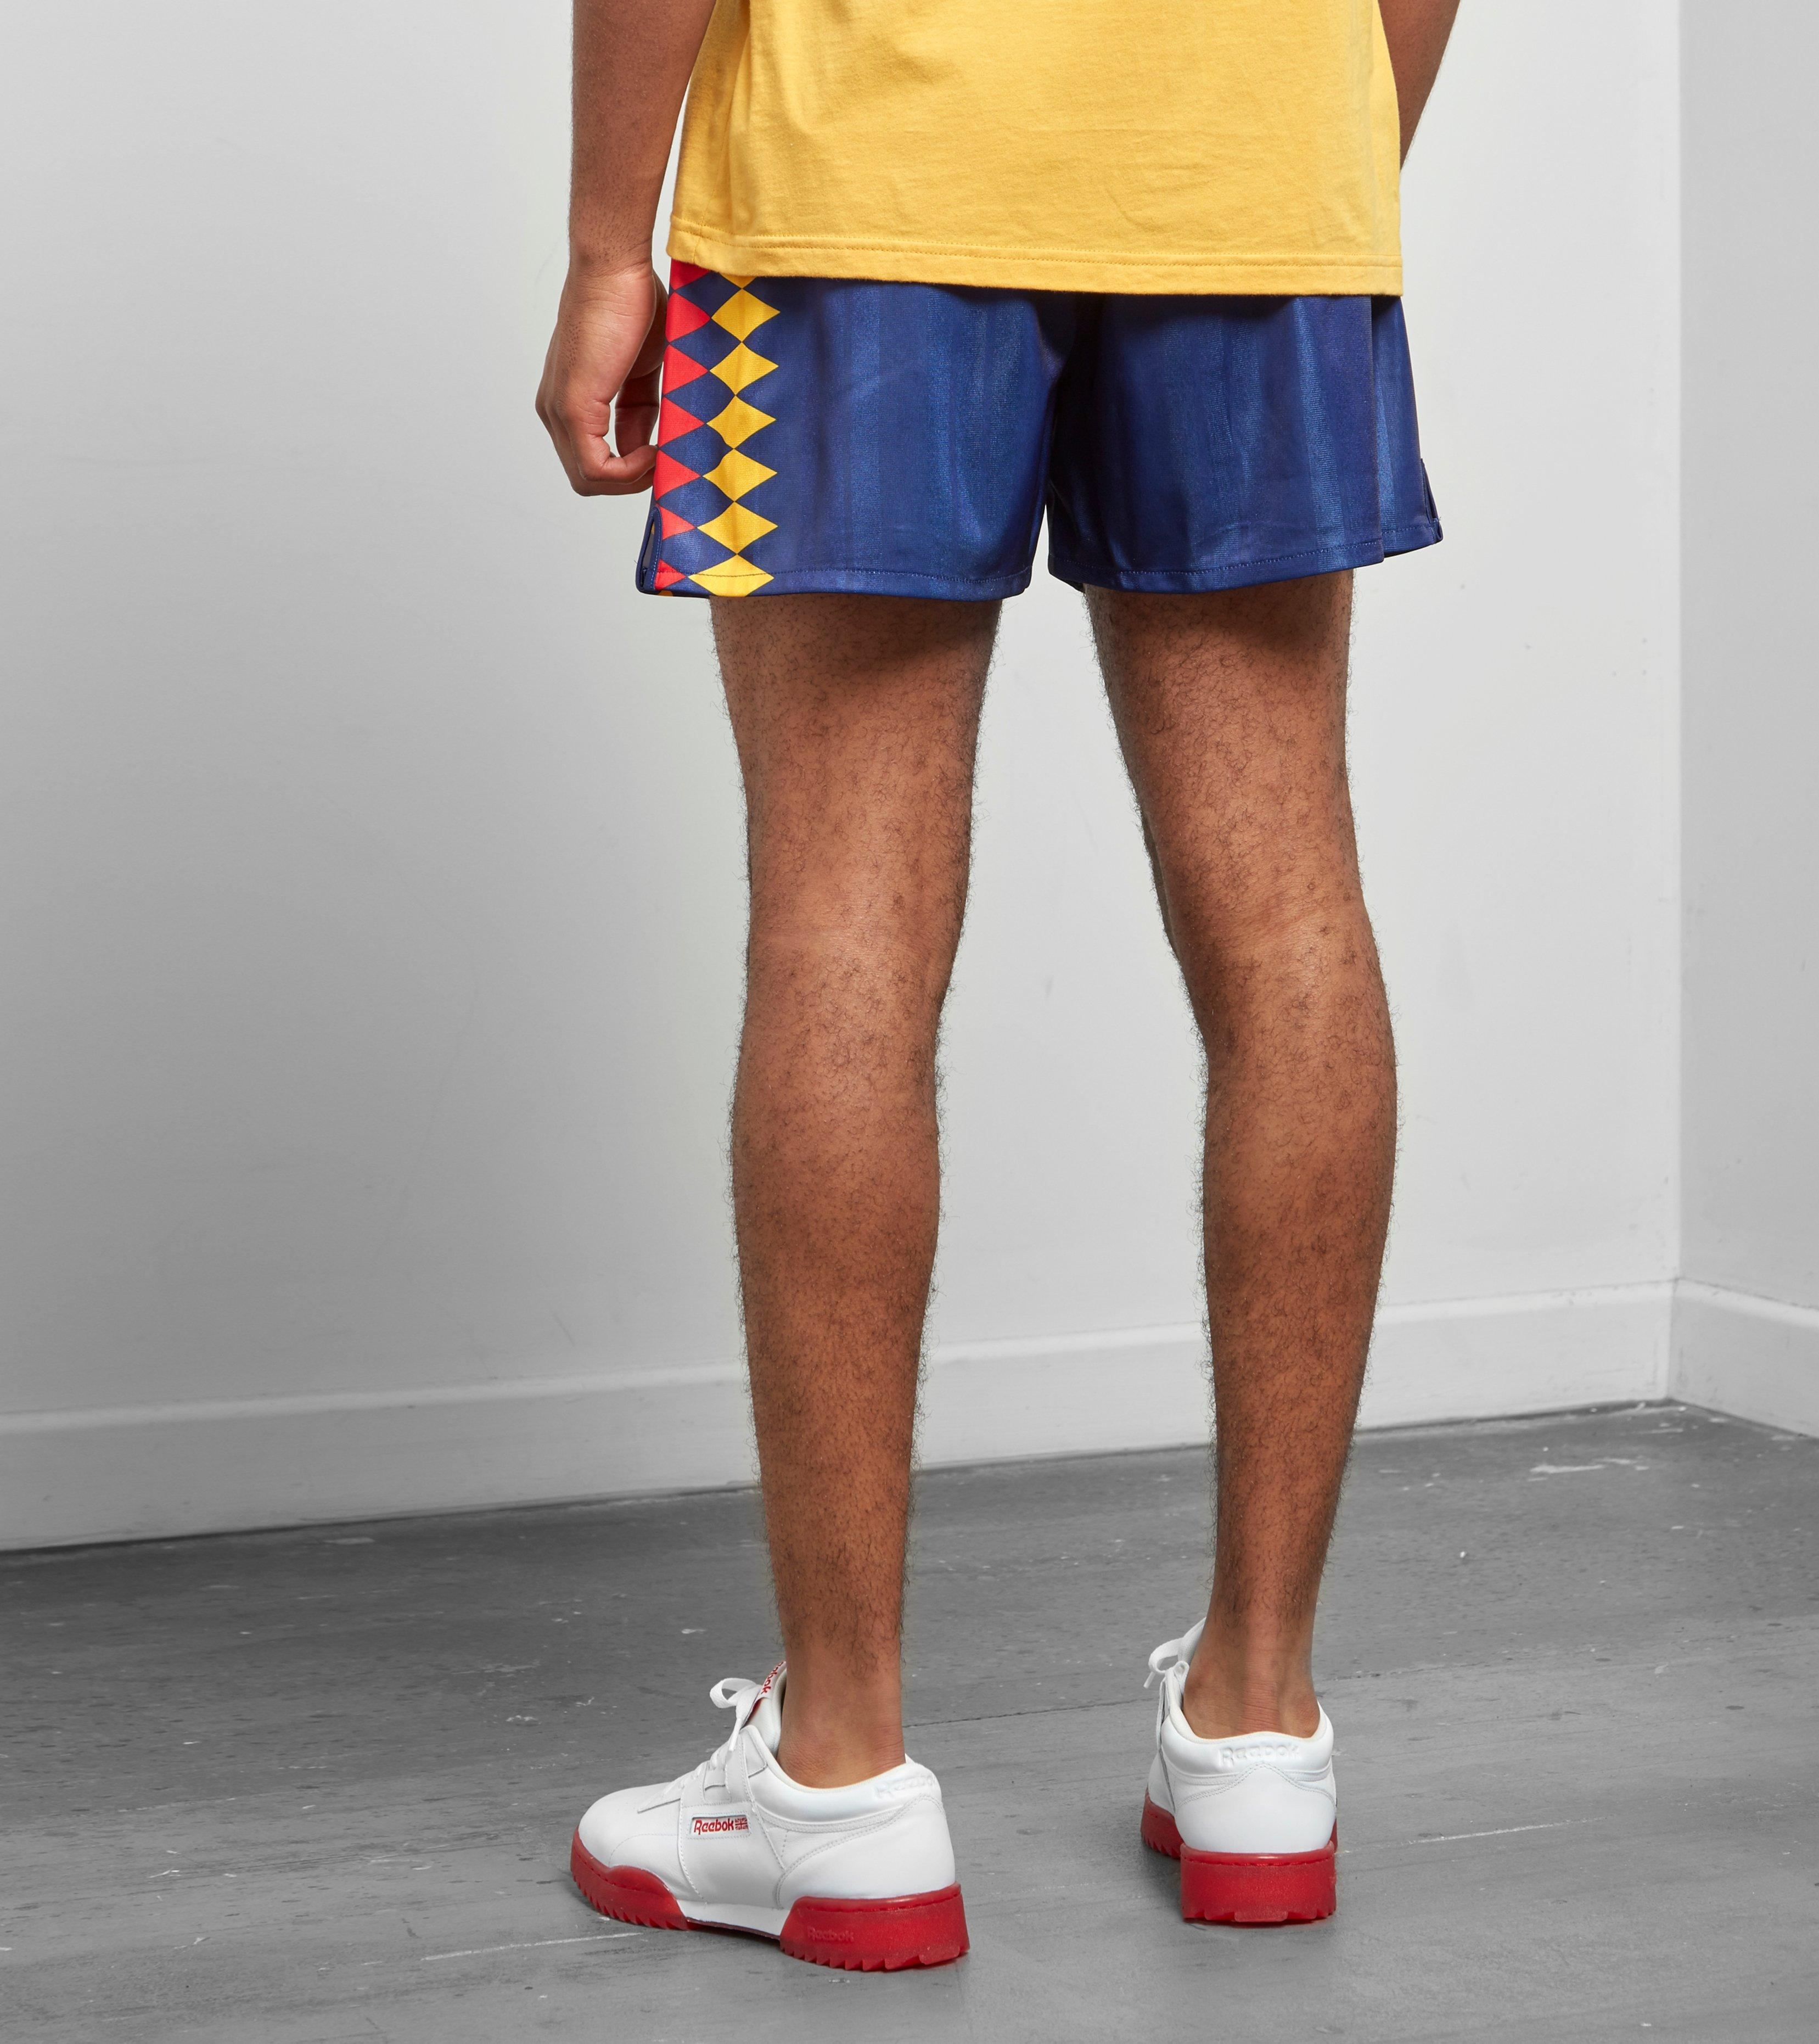 e4a64e318ab0 Lyst - adidas Originals Spain Shorts in Blue for Men